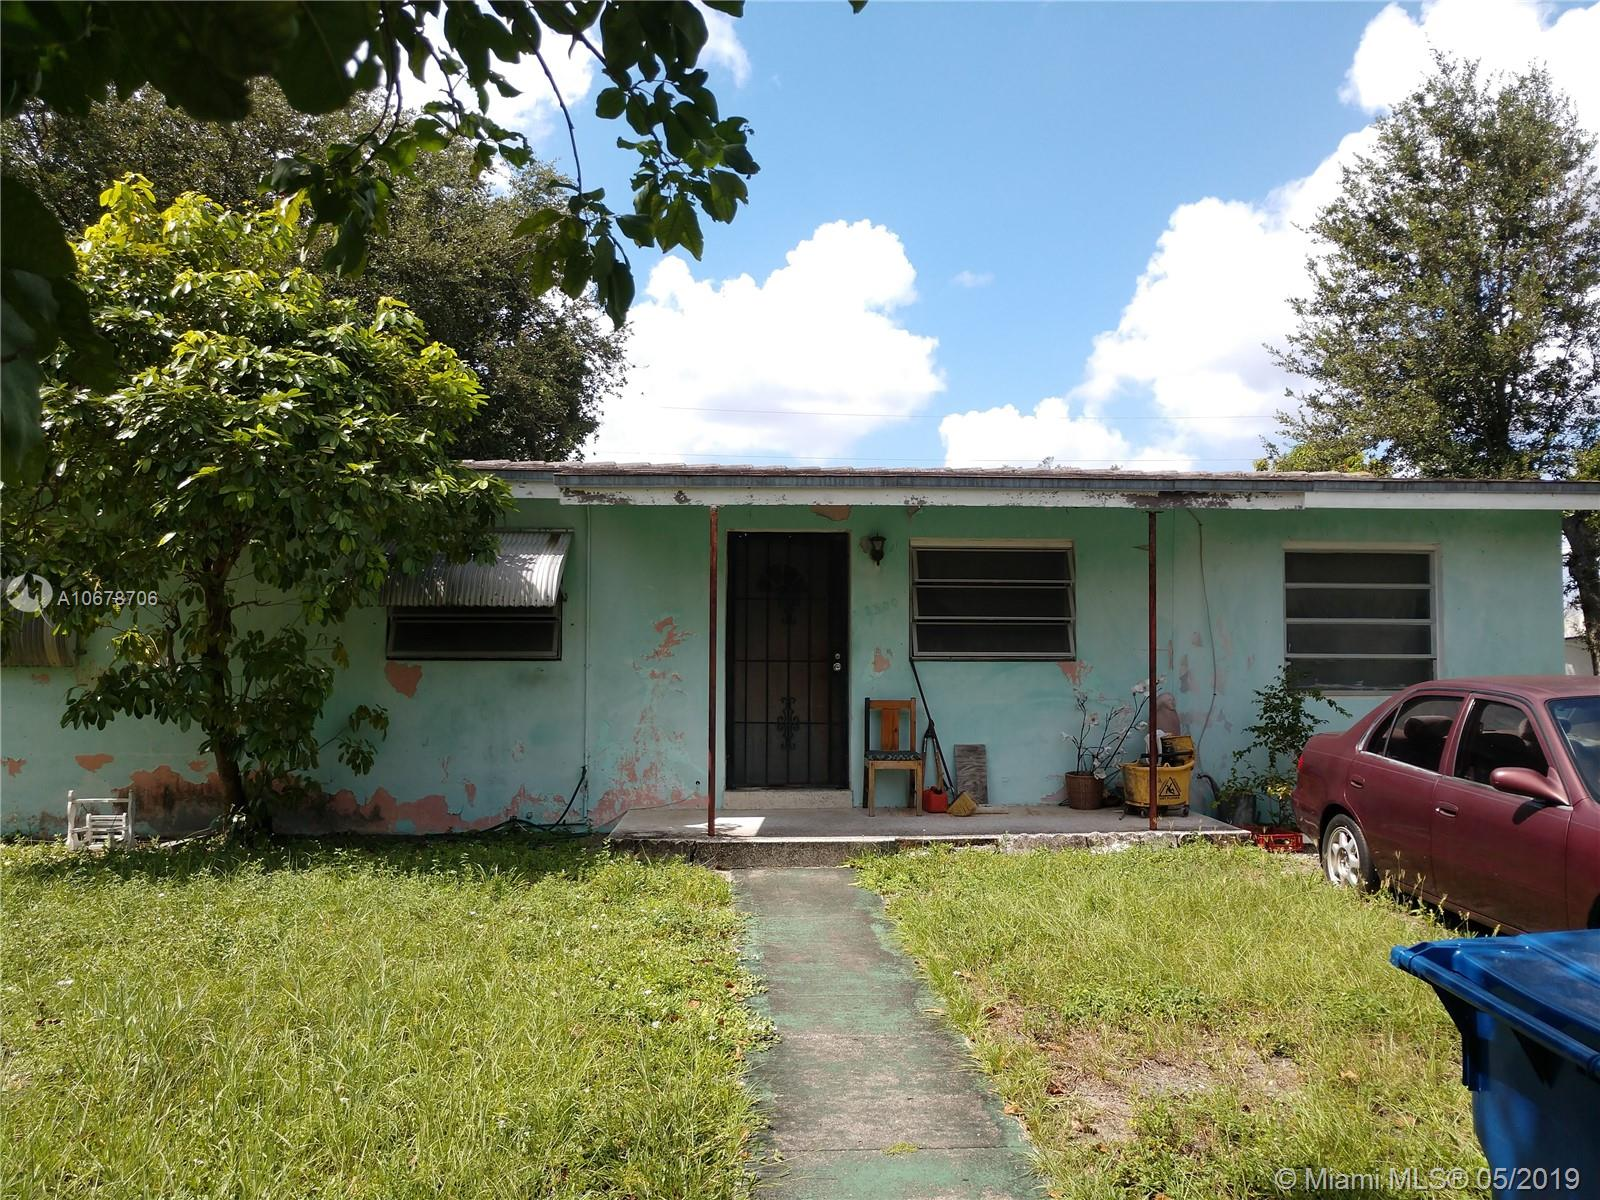 8500 NW 31st Ct, Miami, FL 33147 - Miami, FL real estate listing